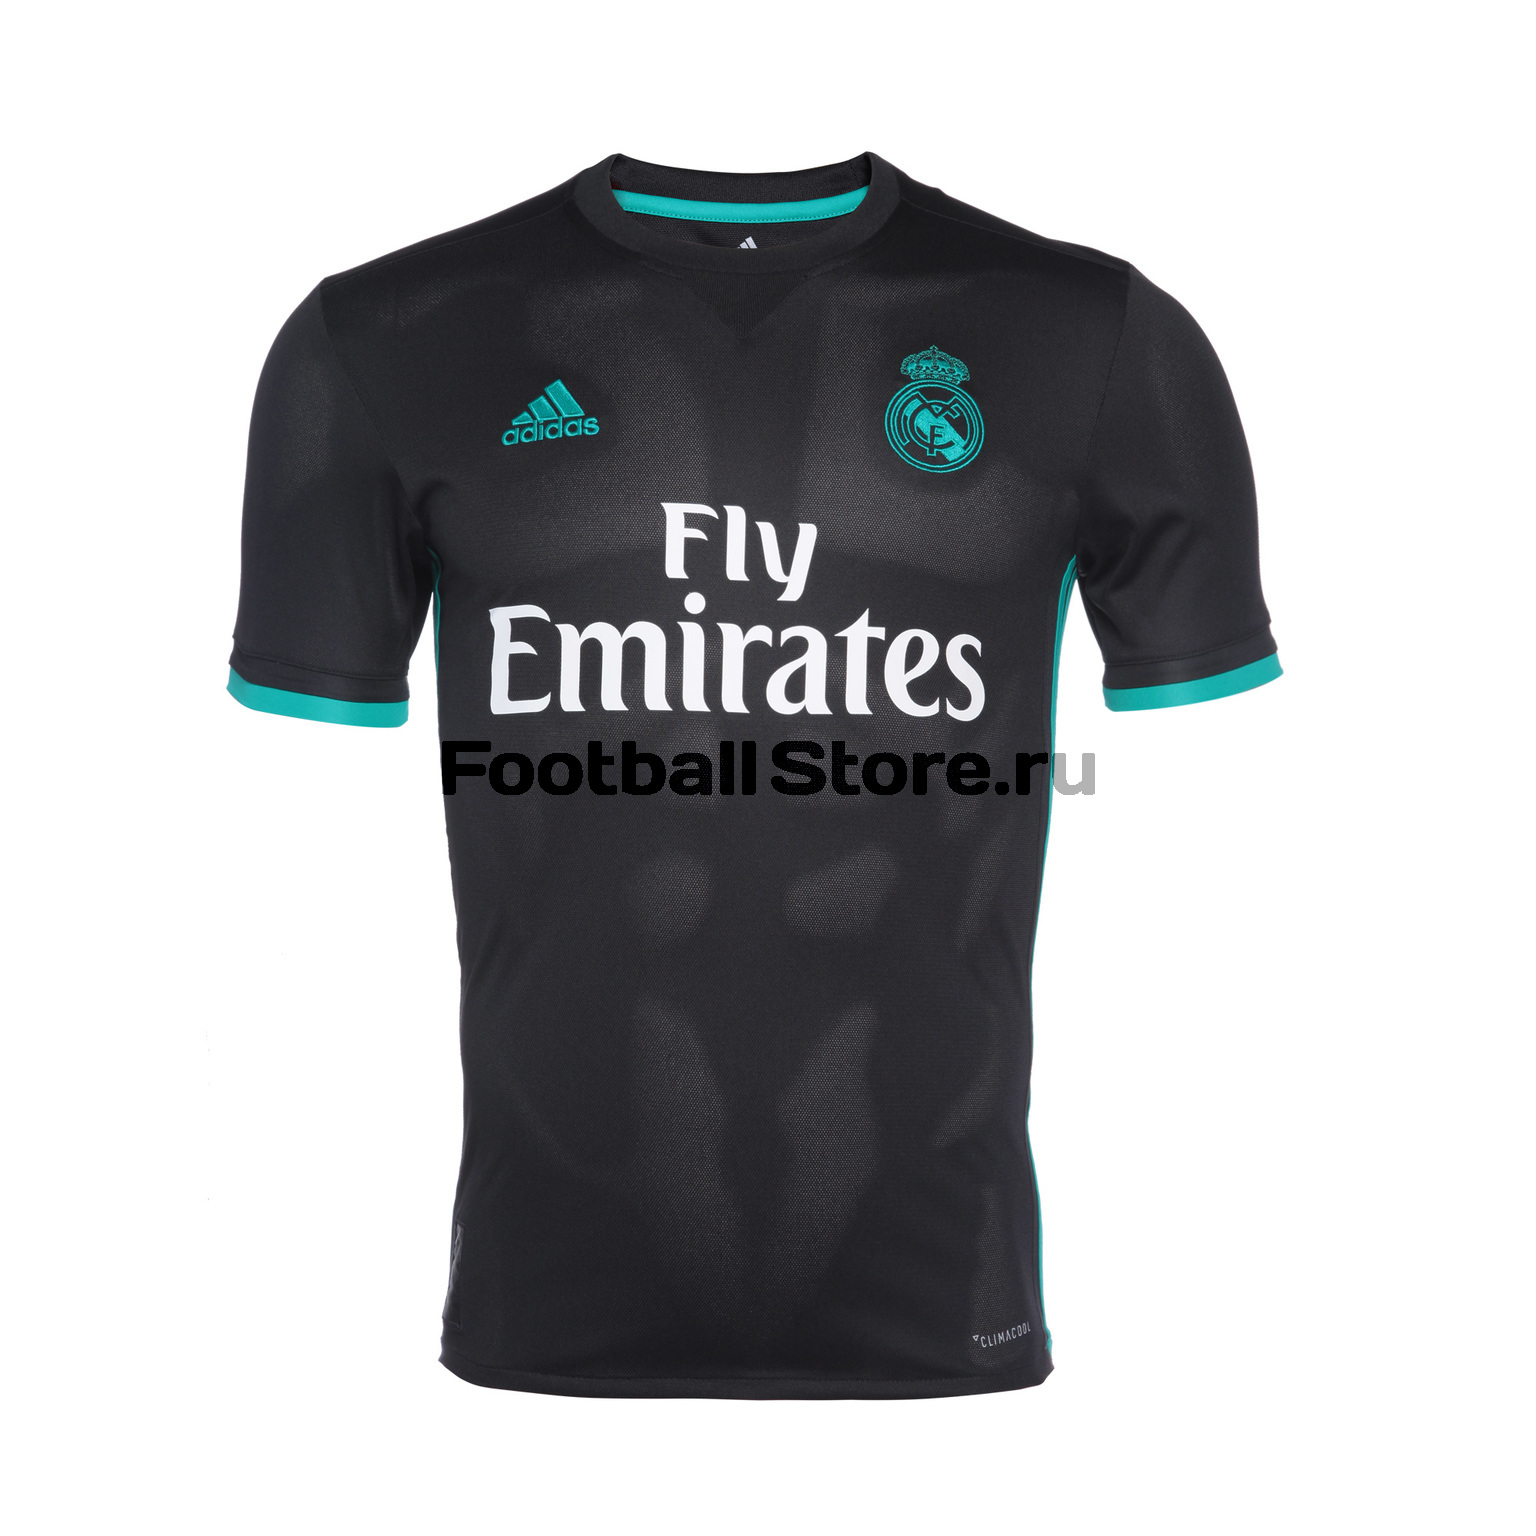 Real Madrid Adidas Футболка игровая Adidas Real Madrid Away BR3543 real madrid adidas свитер adidas real madrid euhybrid top bq7851